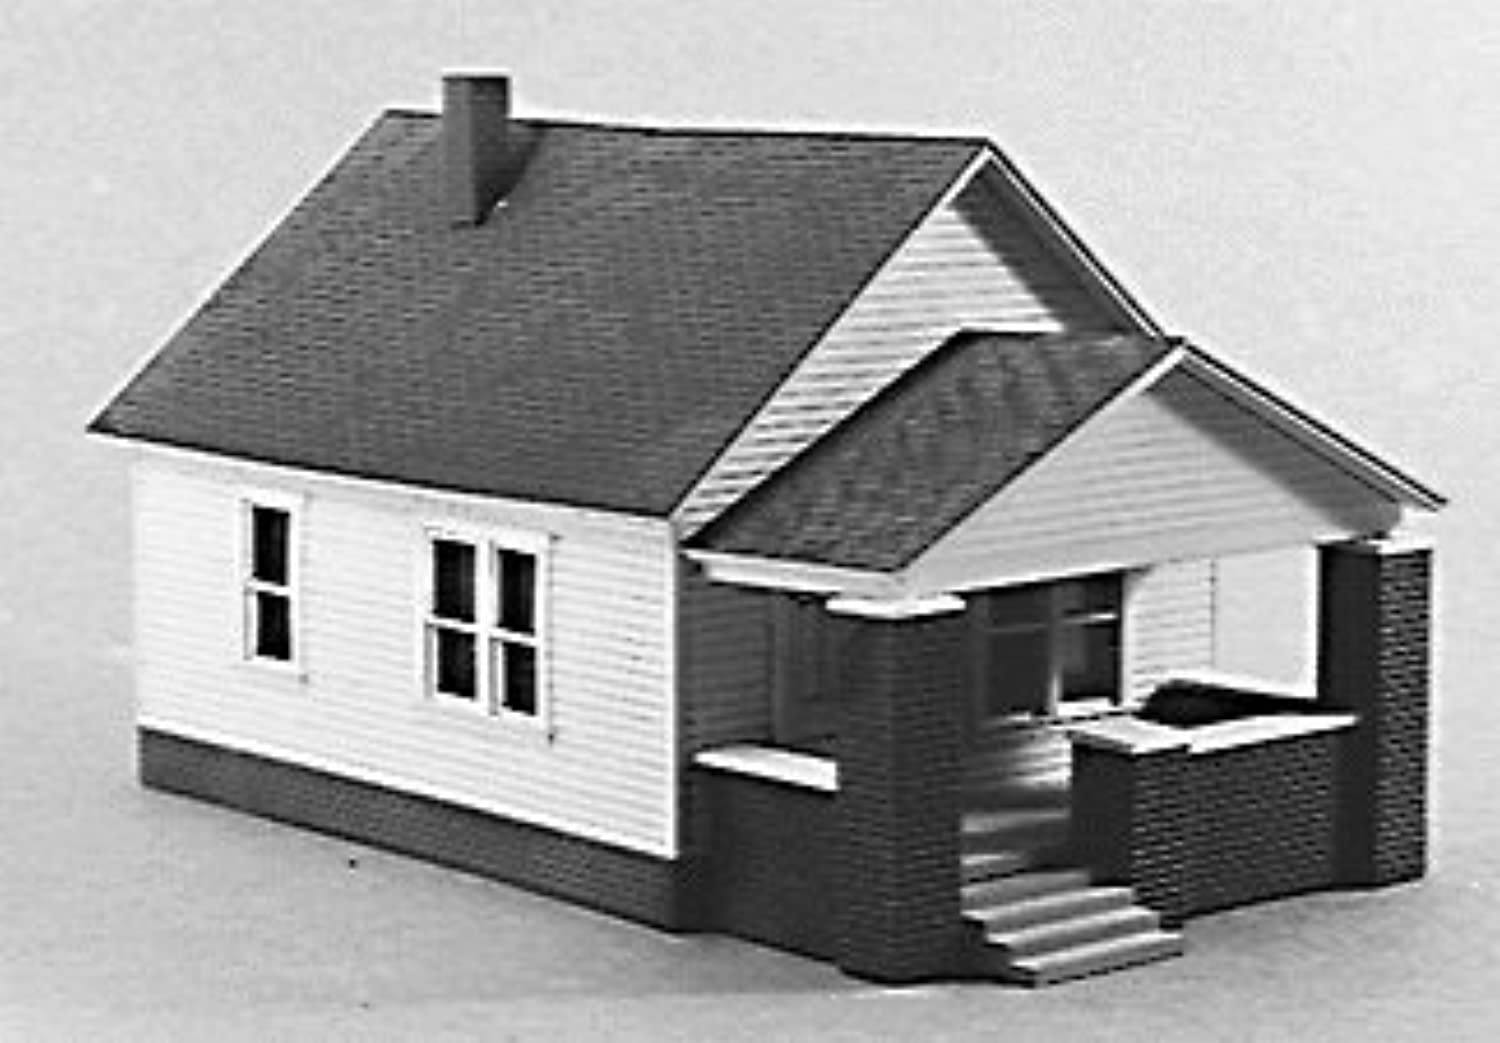 Rix Products  OneStory House w Front Porch  Kit  3 x 43 8  7.7 x 11.2cm  HO by USA